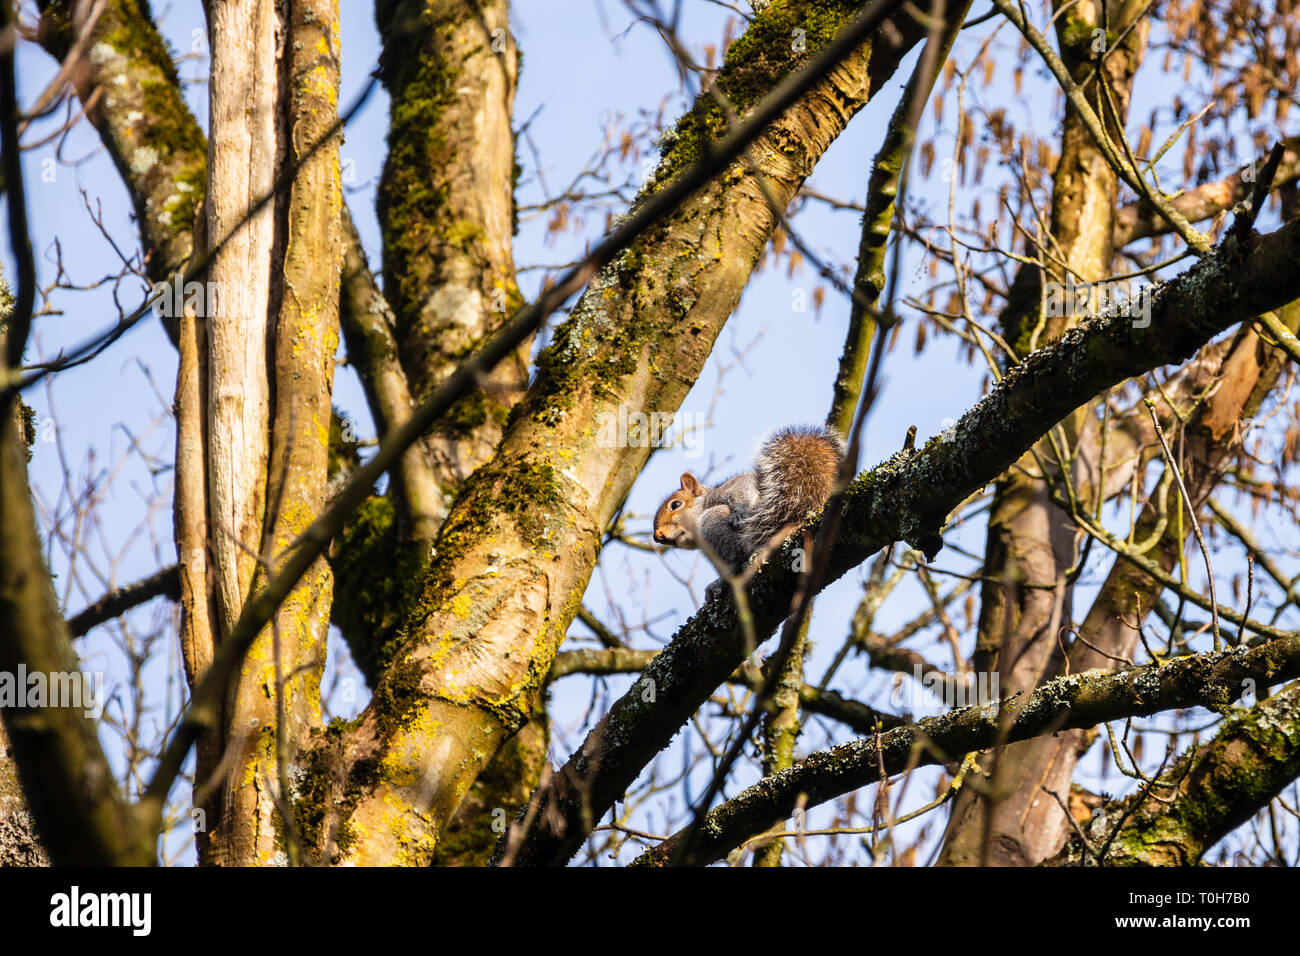 The invasive grey squirrel Sciurus carolinensis on a tree branch with moss and lichen looking down Stock Photo